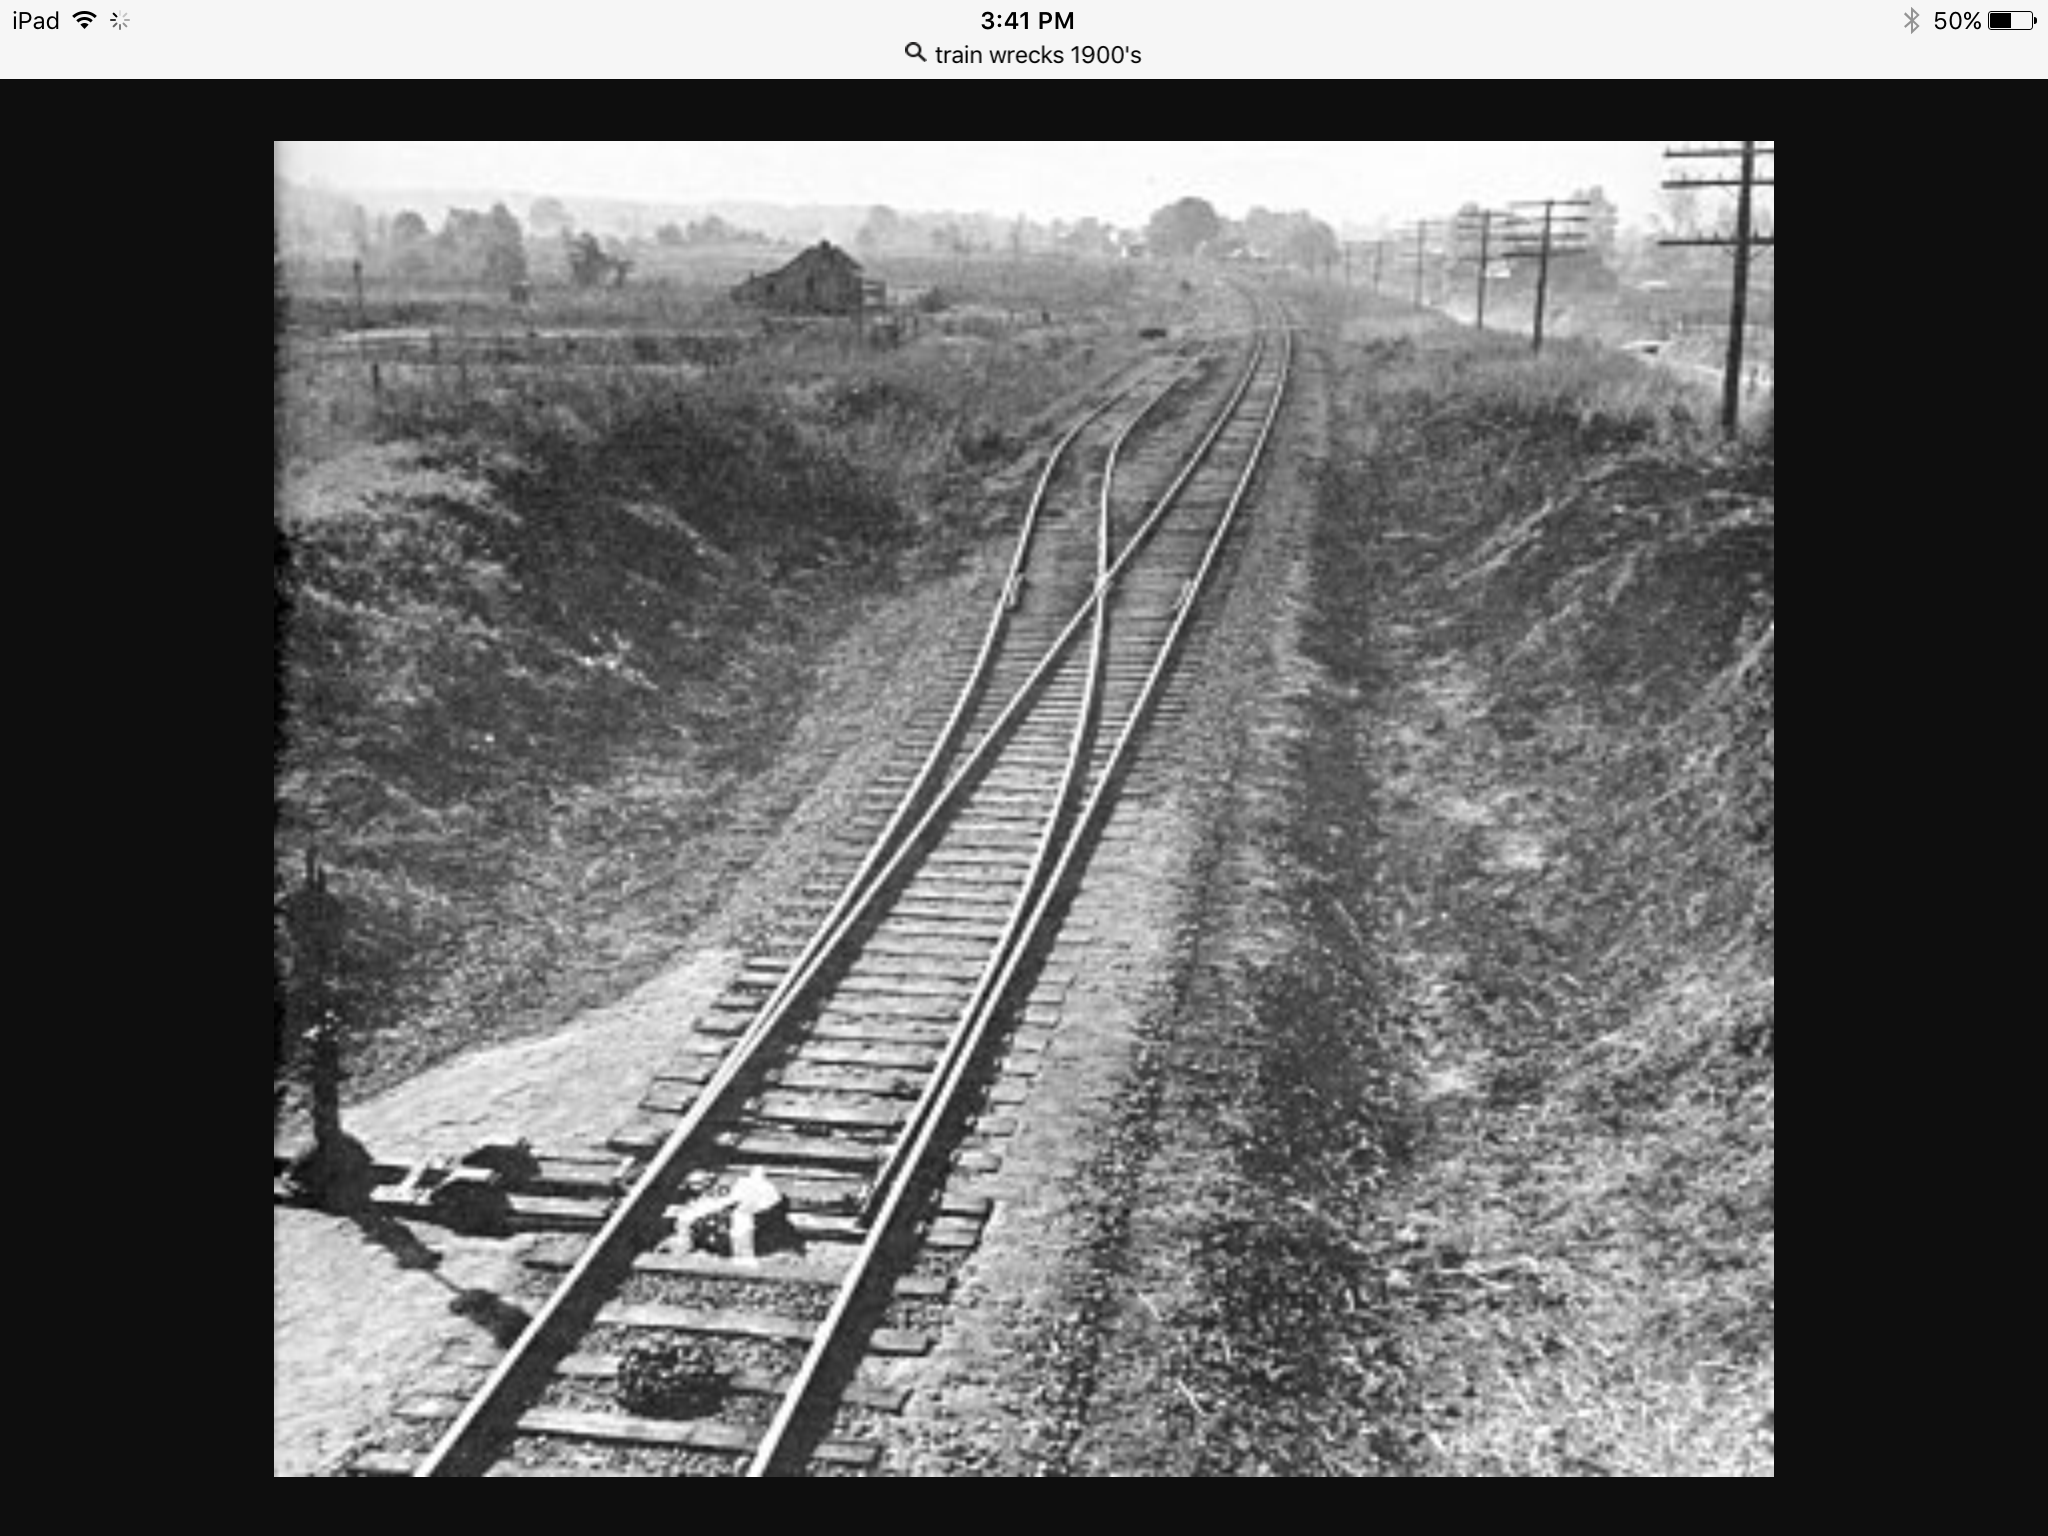 A switch. Railroad tracks, Pictures, Railroad